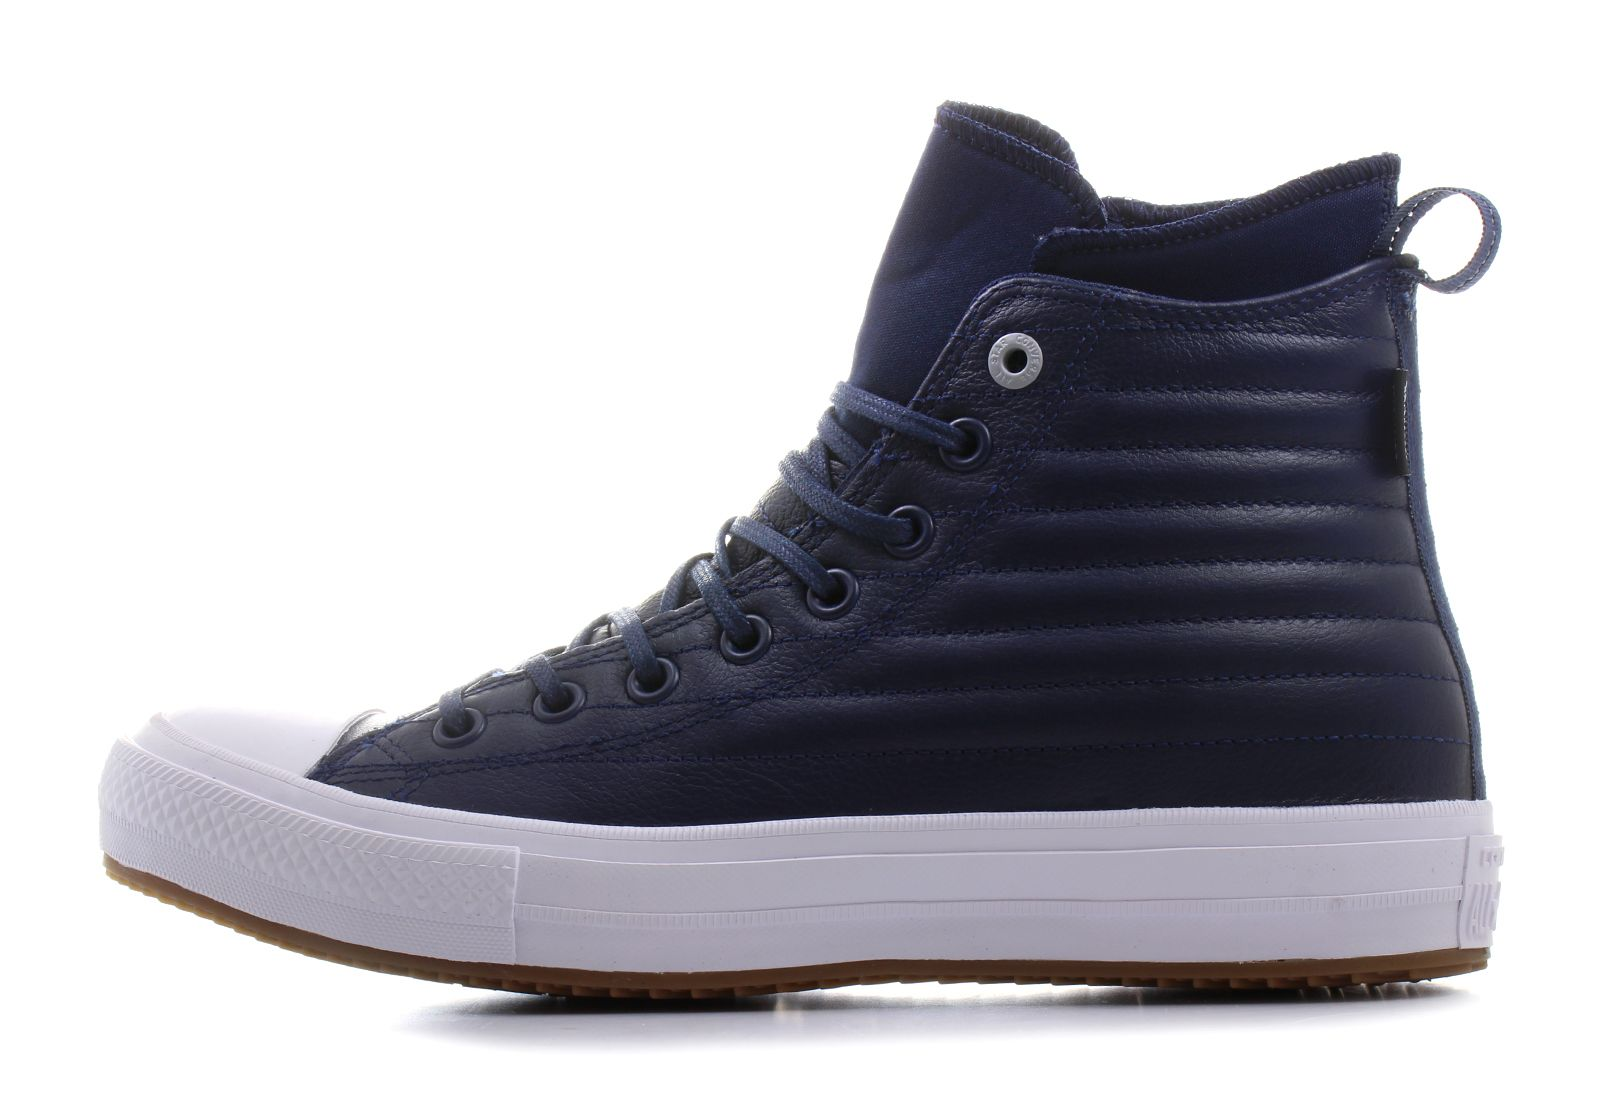 Converse Sneakers Chuck Taylor Waterproof Boot Quilted